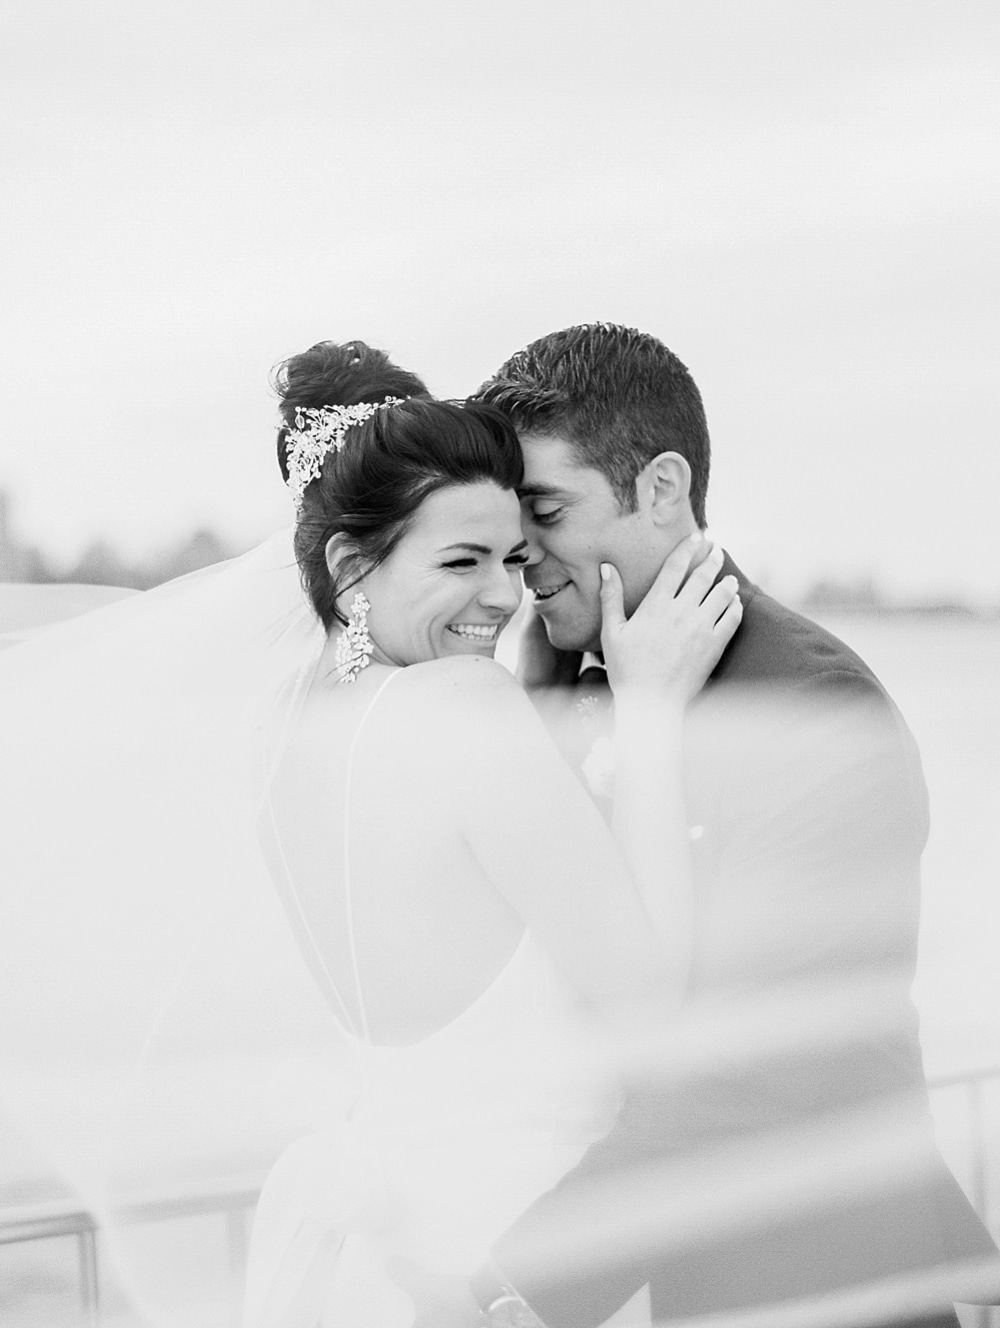 Kristin-La-Voie-Photography-chicago-wedding-photographer-20